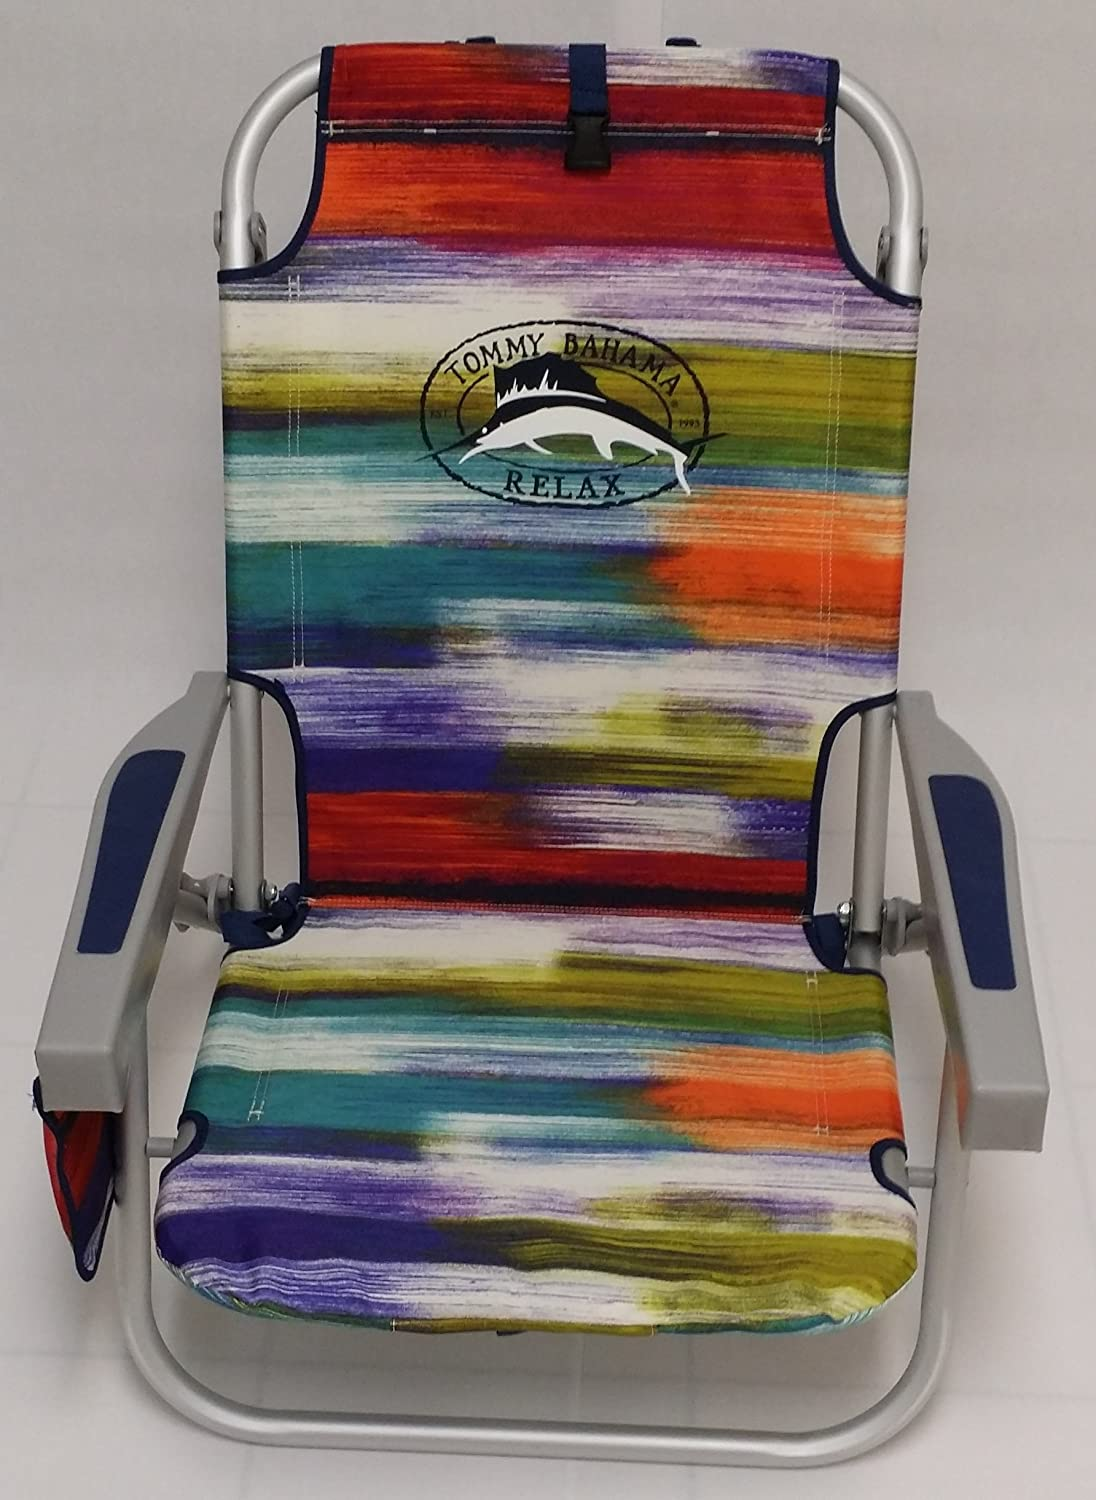 tommy bahama cooler chair harry bertoia 2015 backpack beach chairs storage